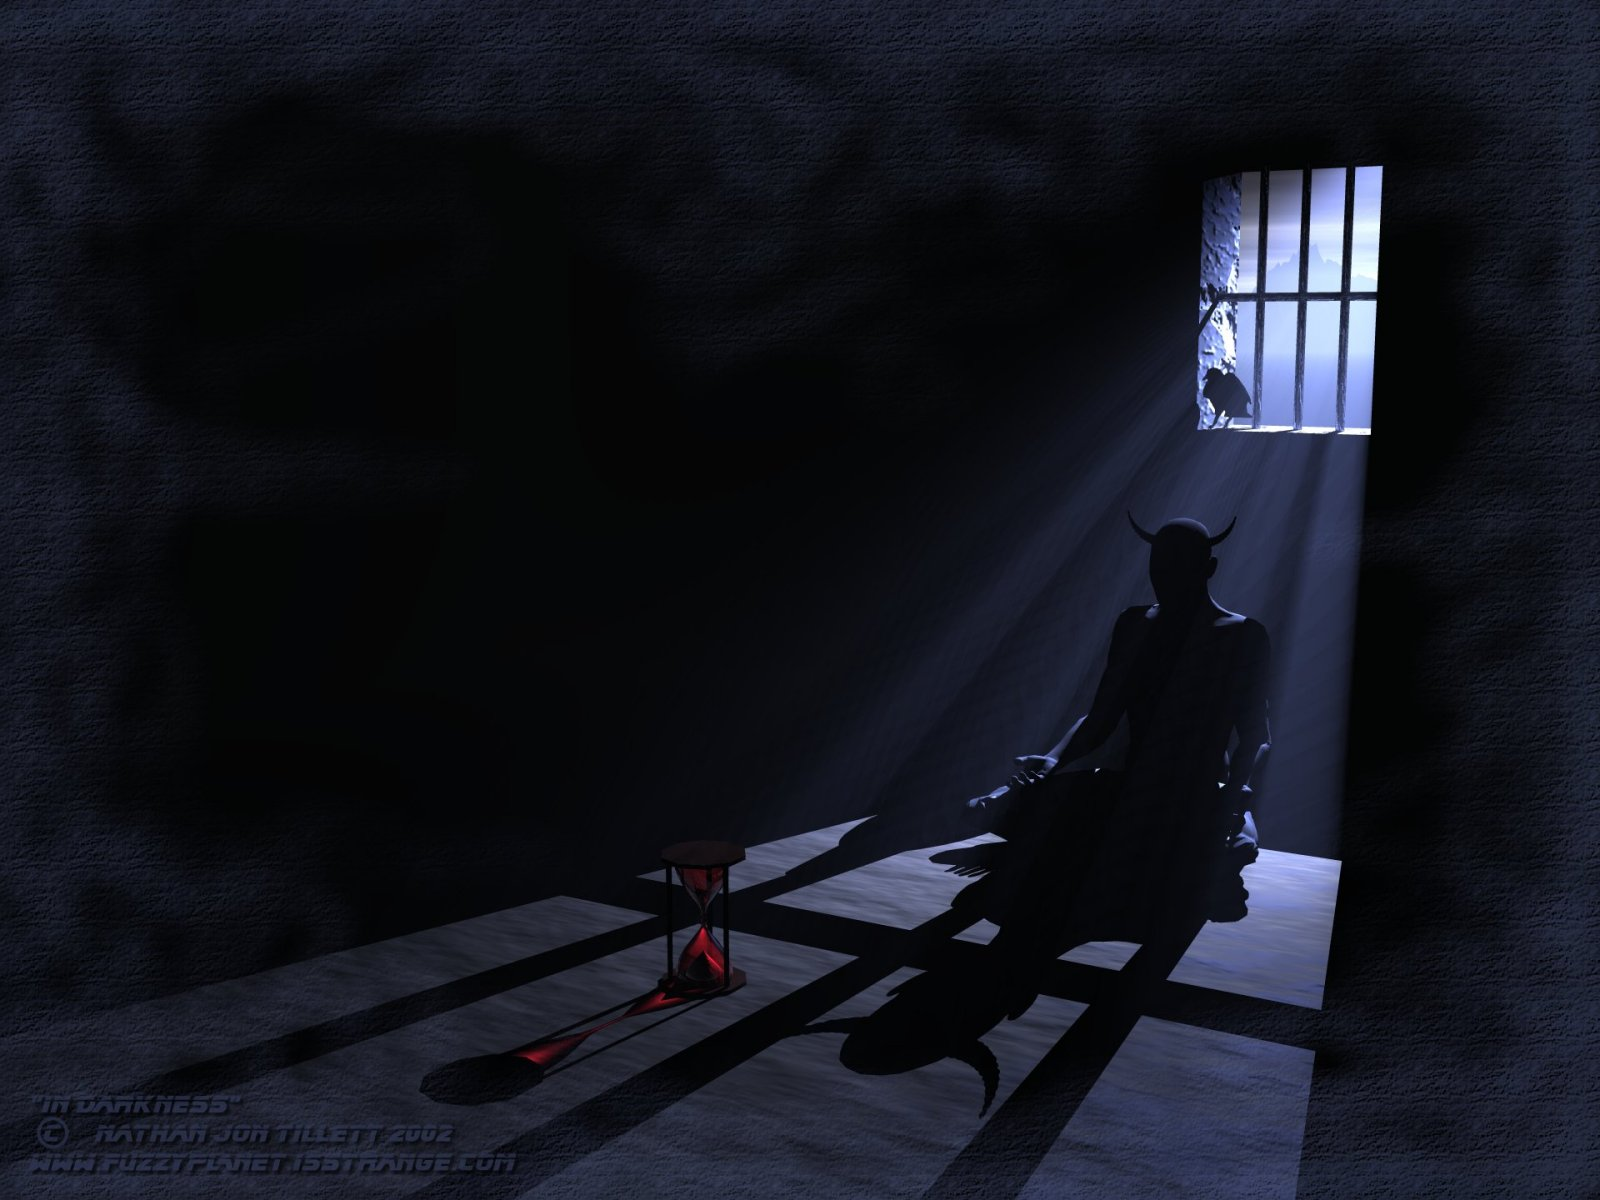 http://2.bp.blogspot.com/-OsLUd7GxVGo/UIZcj4tW_9I/AAAAAAAAD7A/4lUxLmCTbsQ/s1600/a-prisoner-without-time-dark-wallpaper.jpg